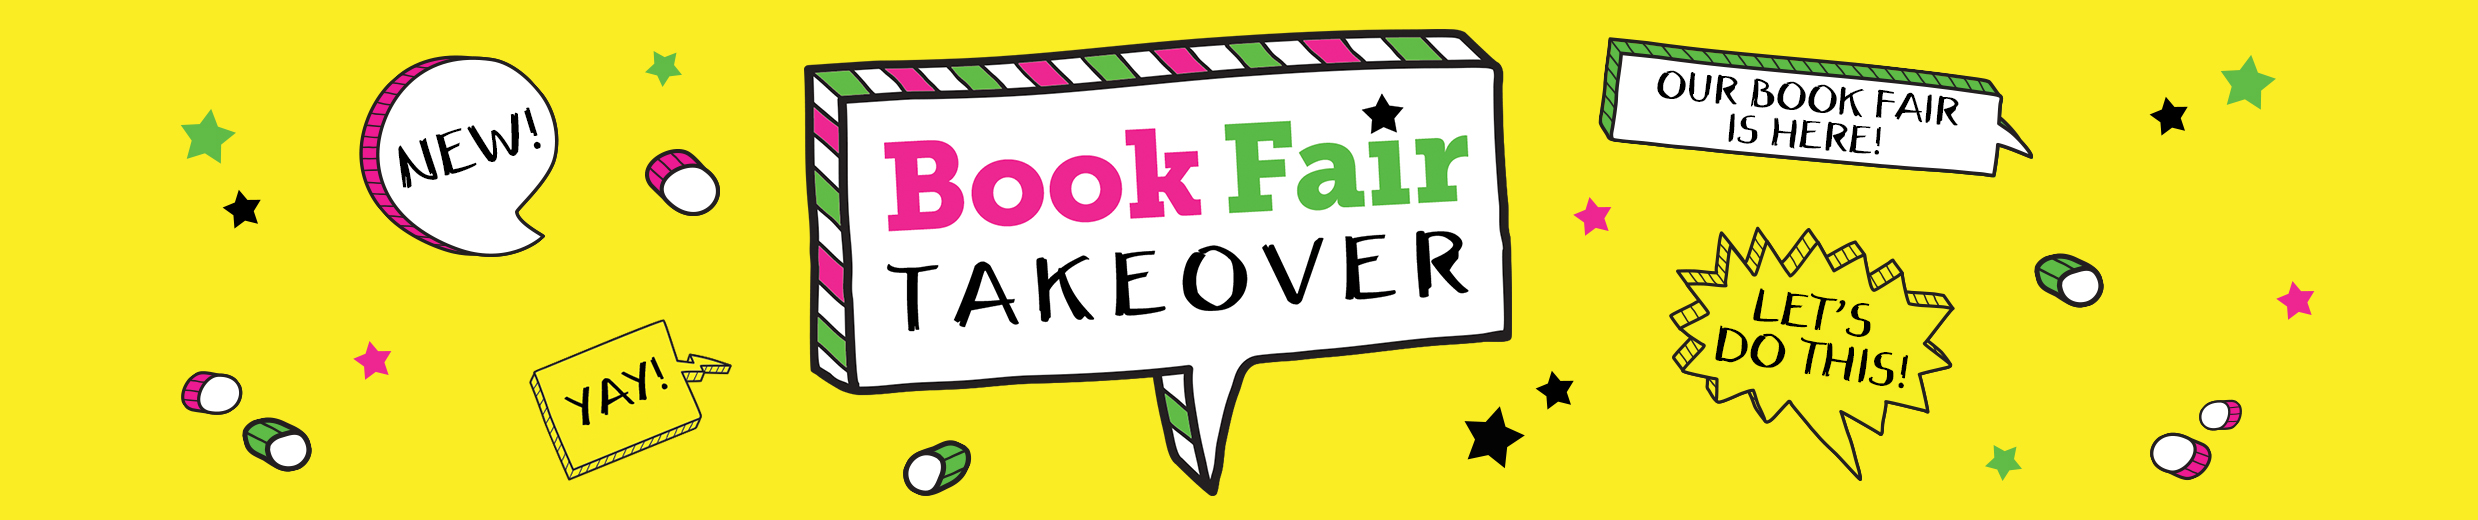 Welcome to Book Fair Takeover